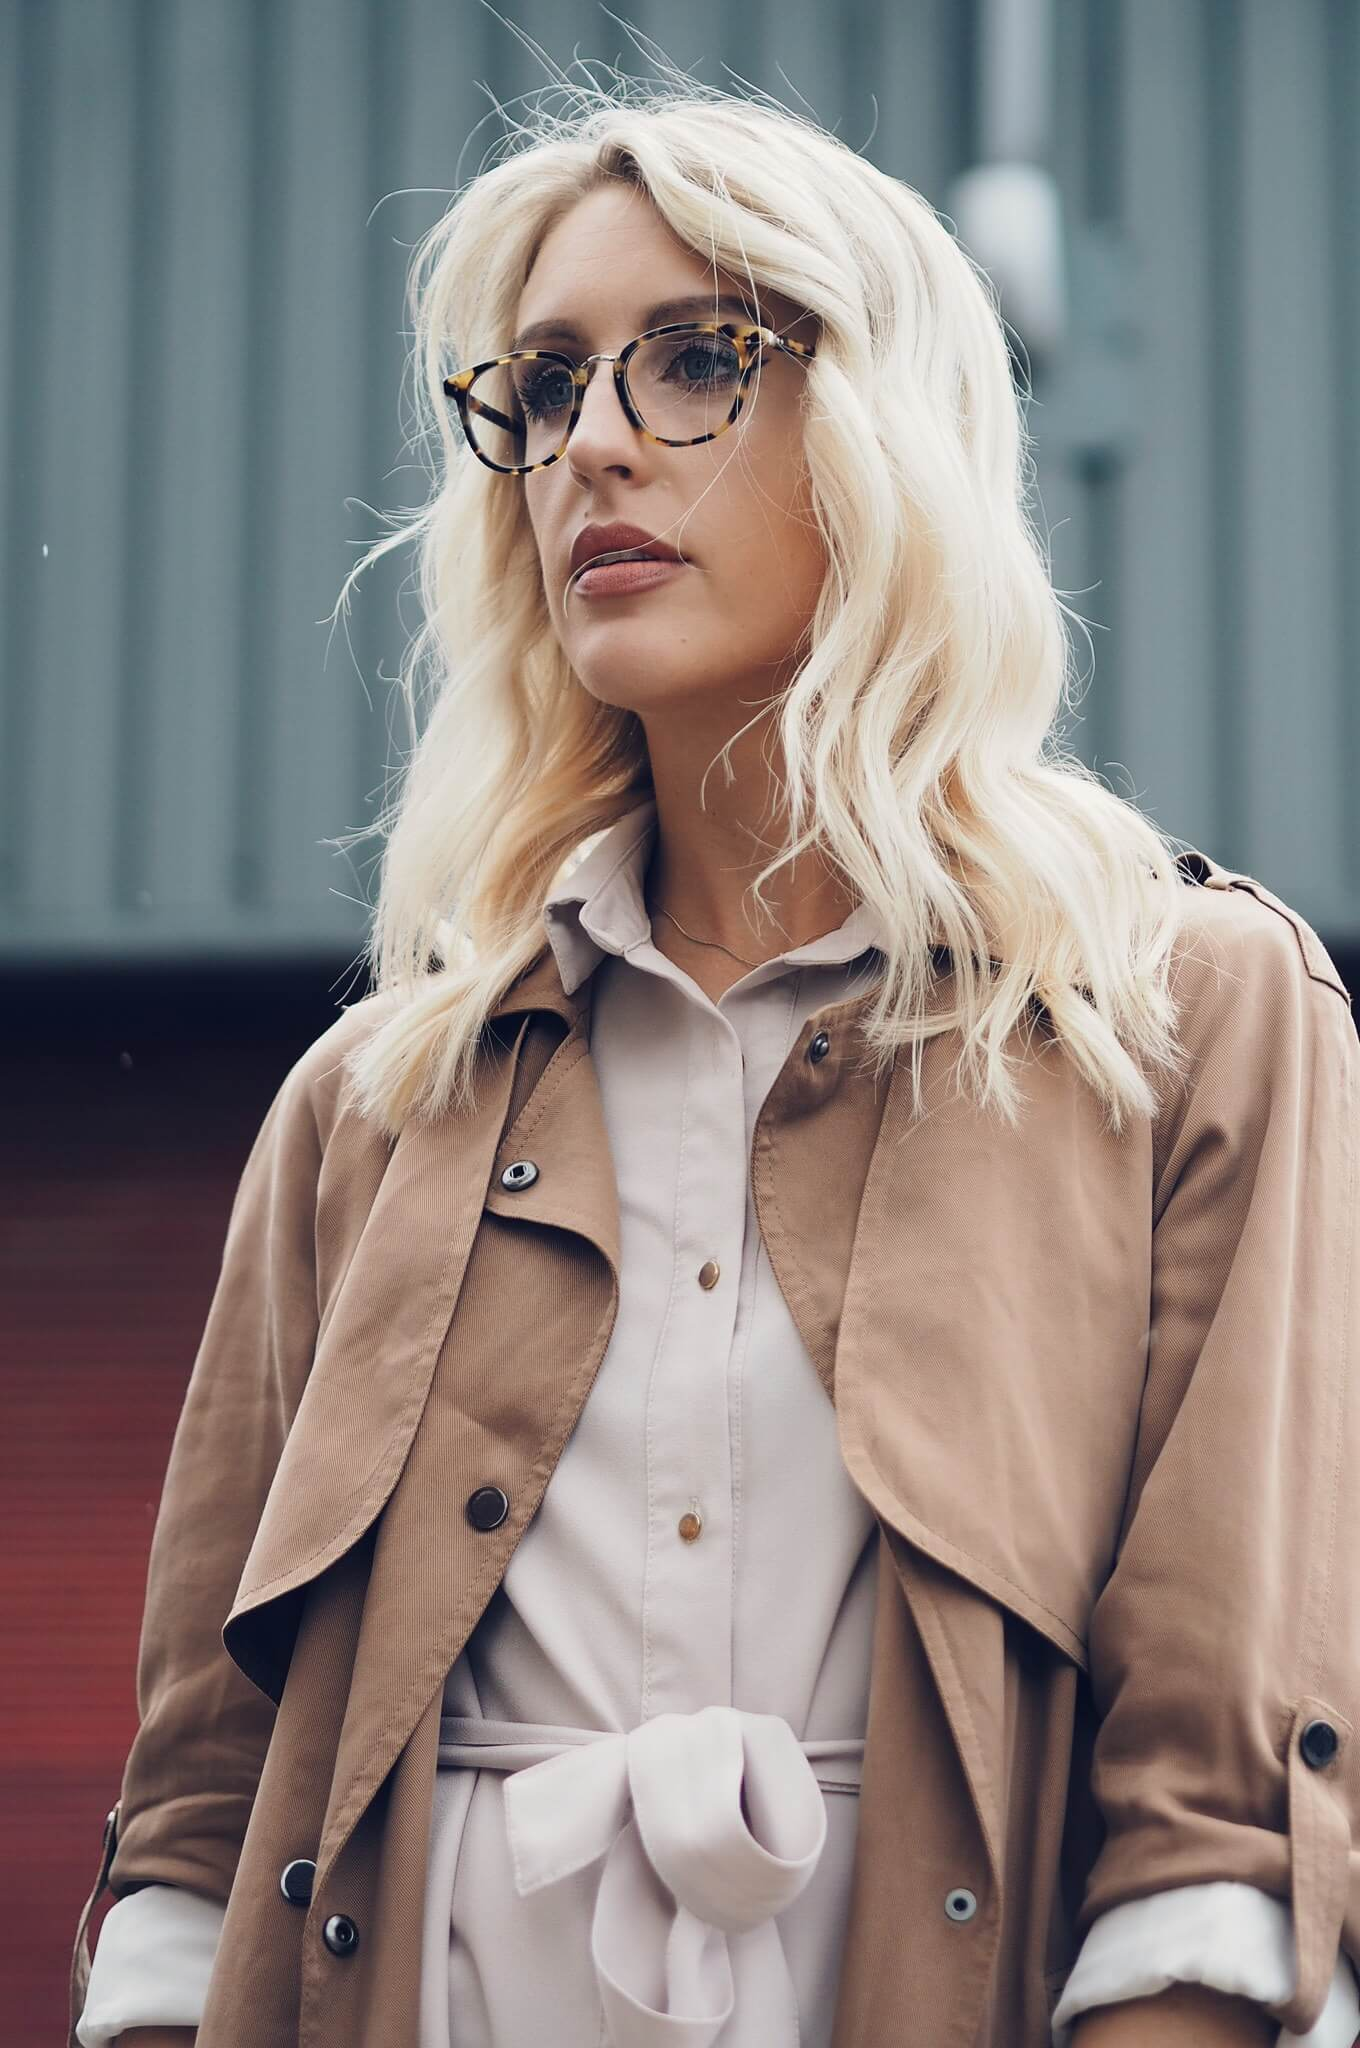 how to find glasses frames to suit your style on fashion blog